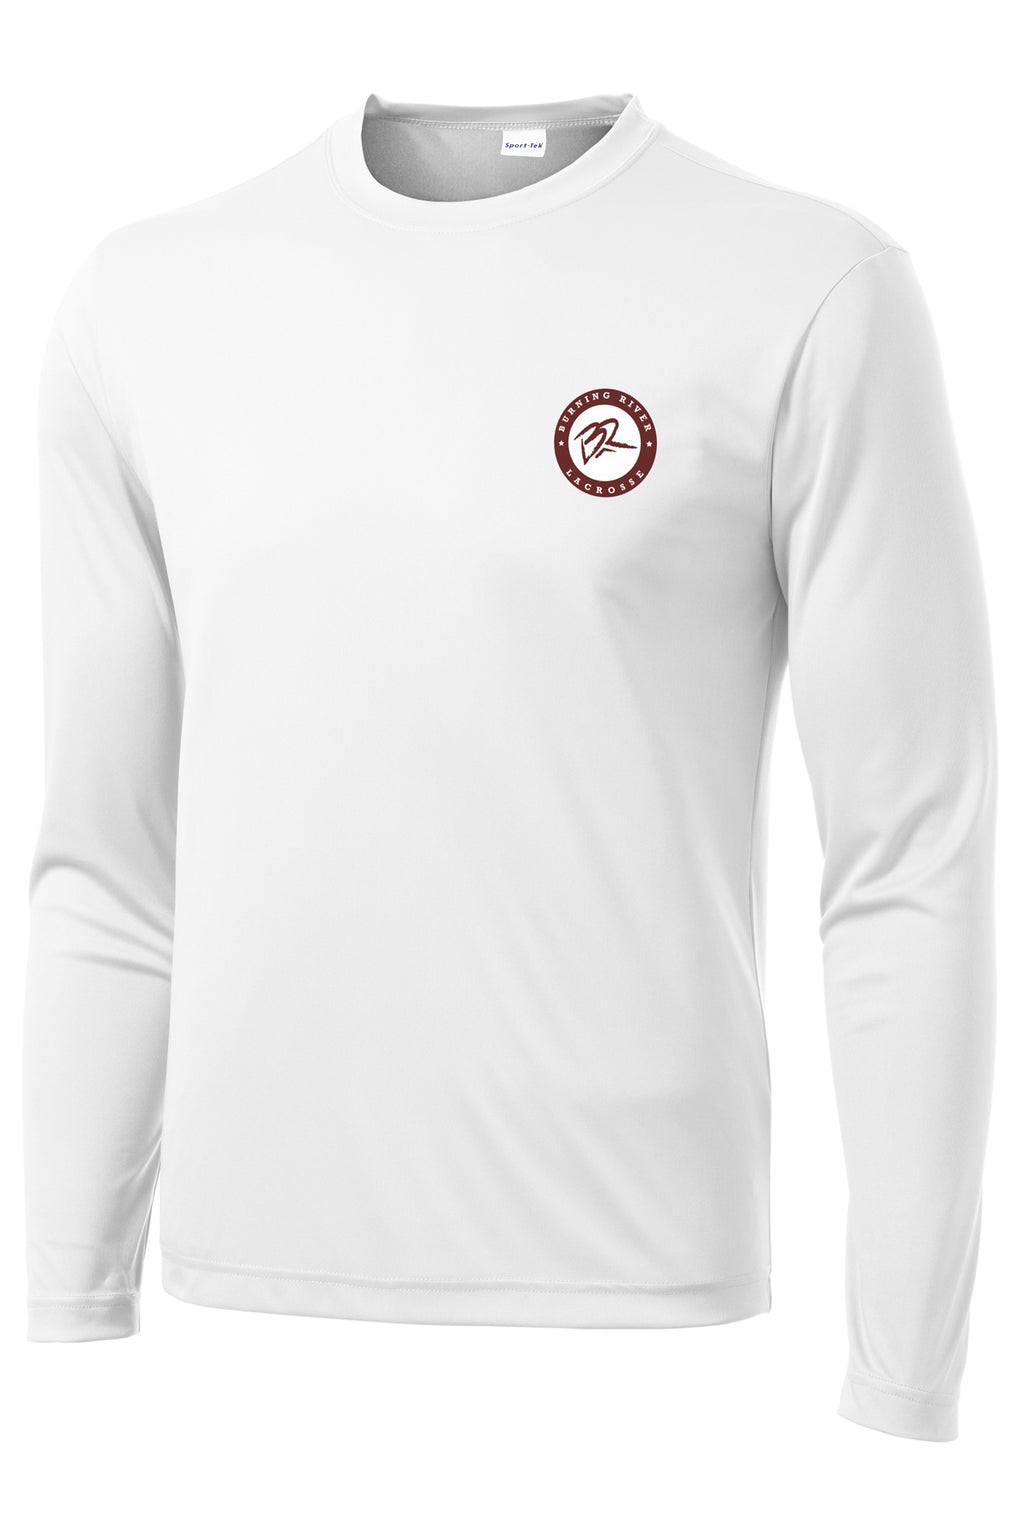 Burning River Long Sleeve Performance Shirt